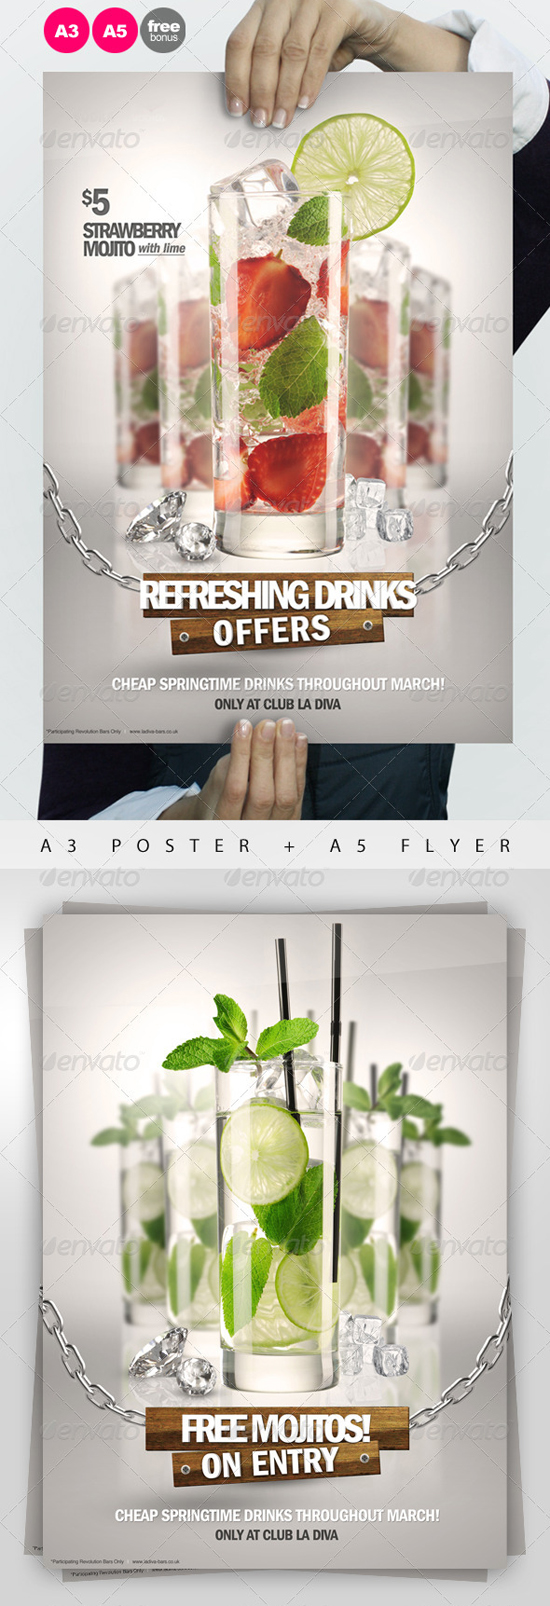 A3 Drinks Advertisement Poster Template